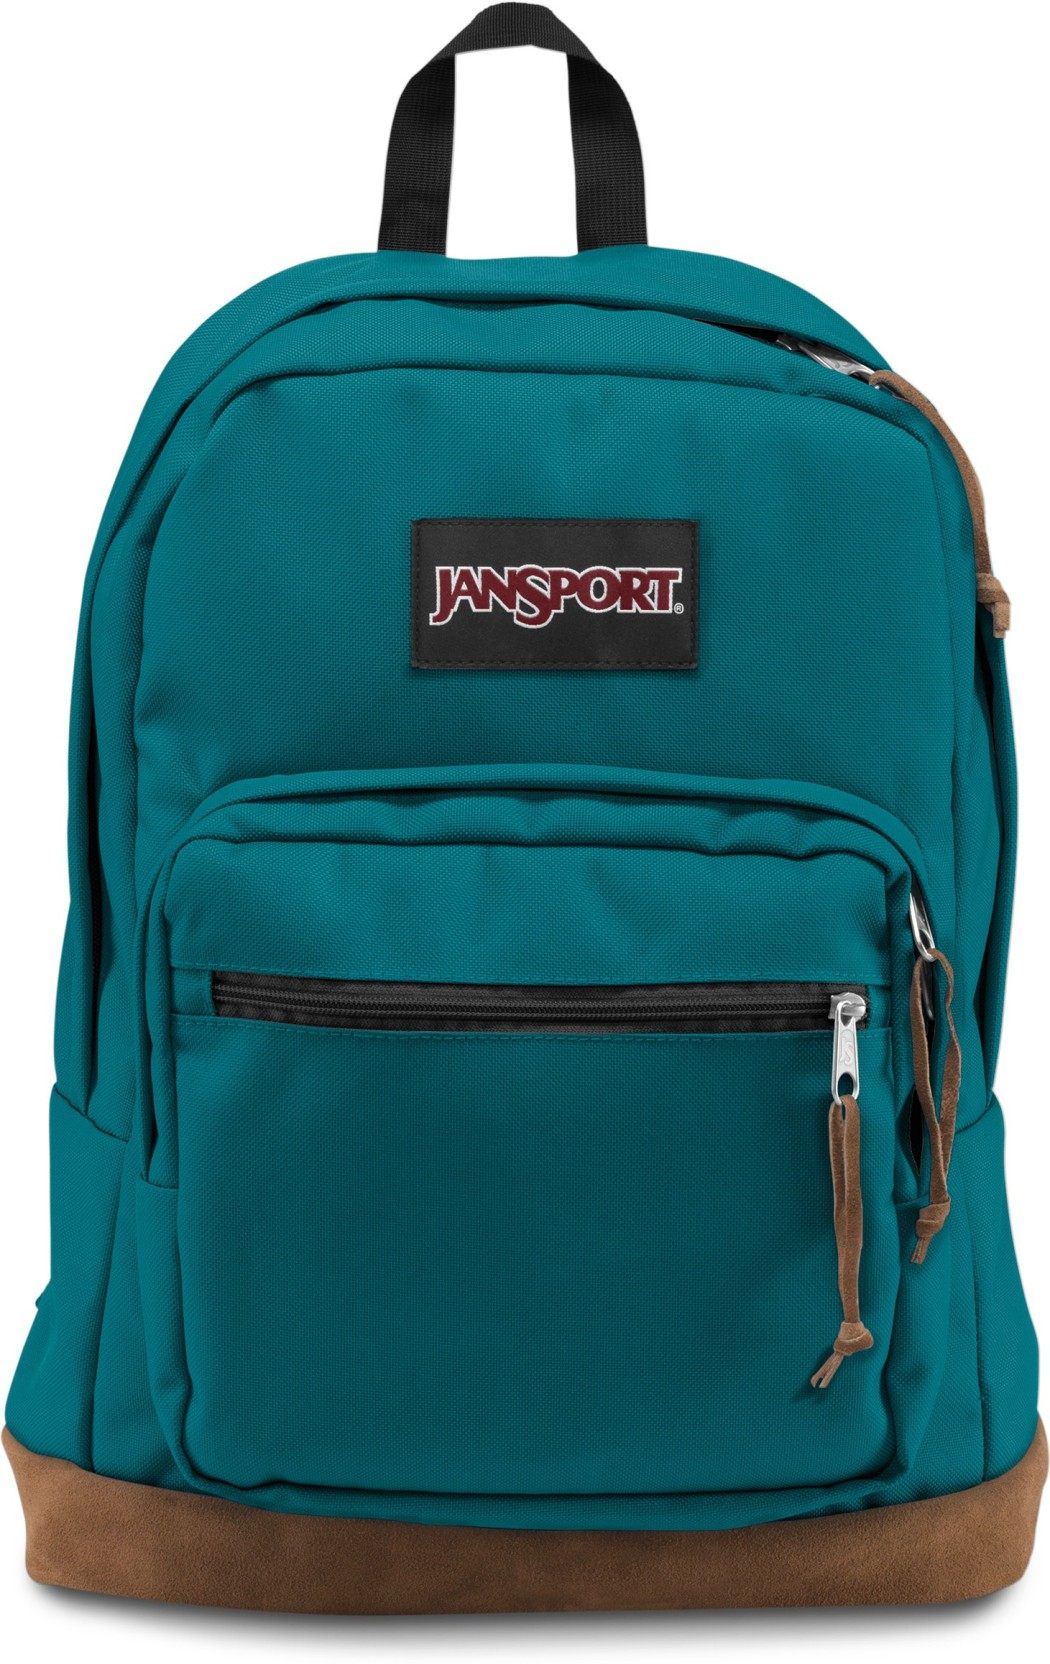 Jansport Backpack Warranty Registration | Building Materials